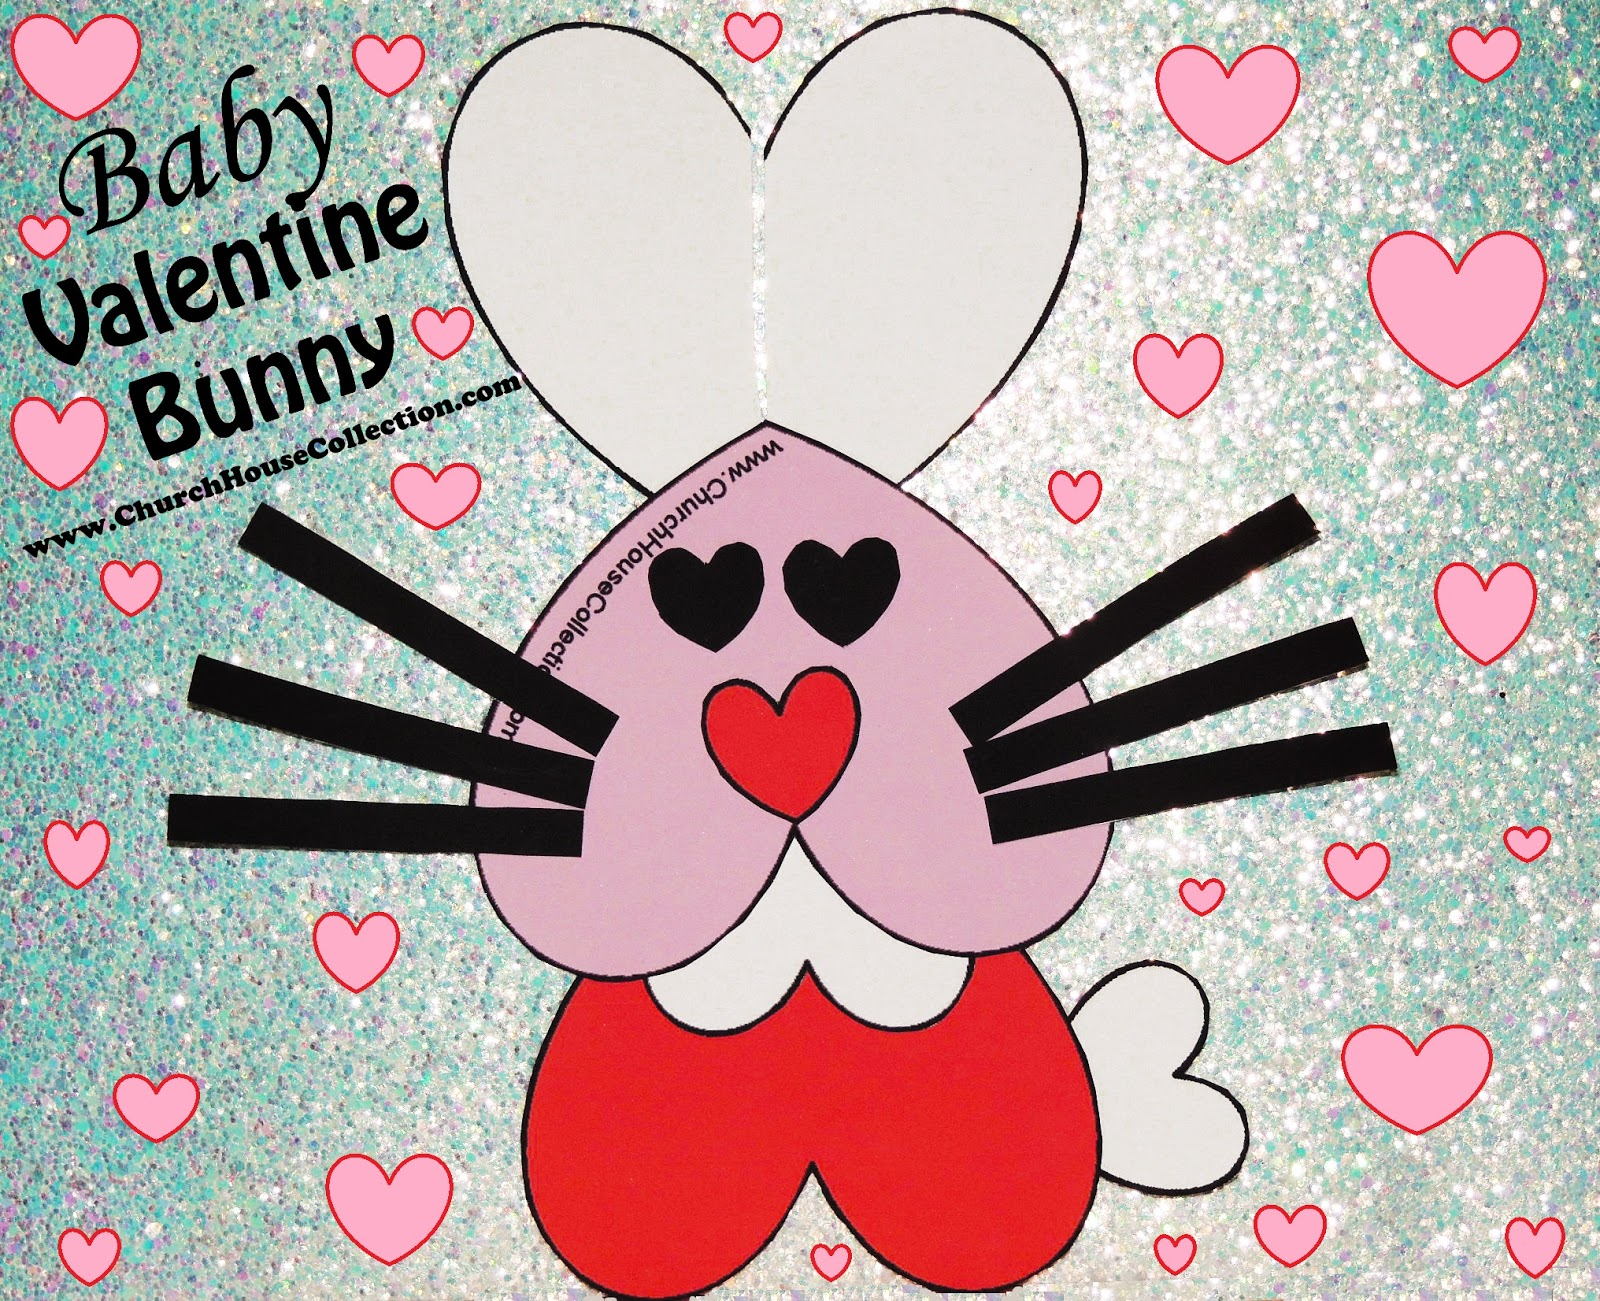 Church House Collection Blog Baby Valentine Bunny